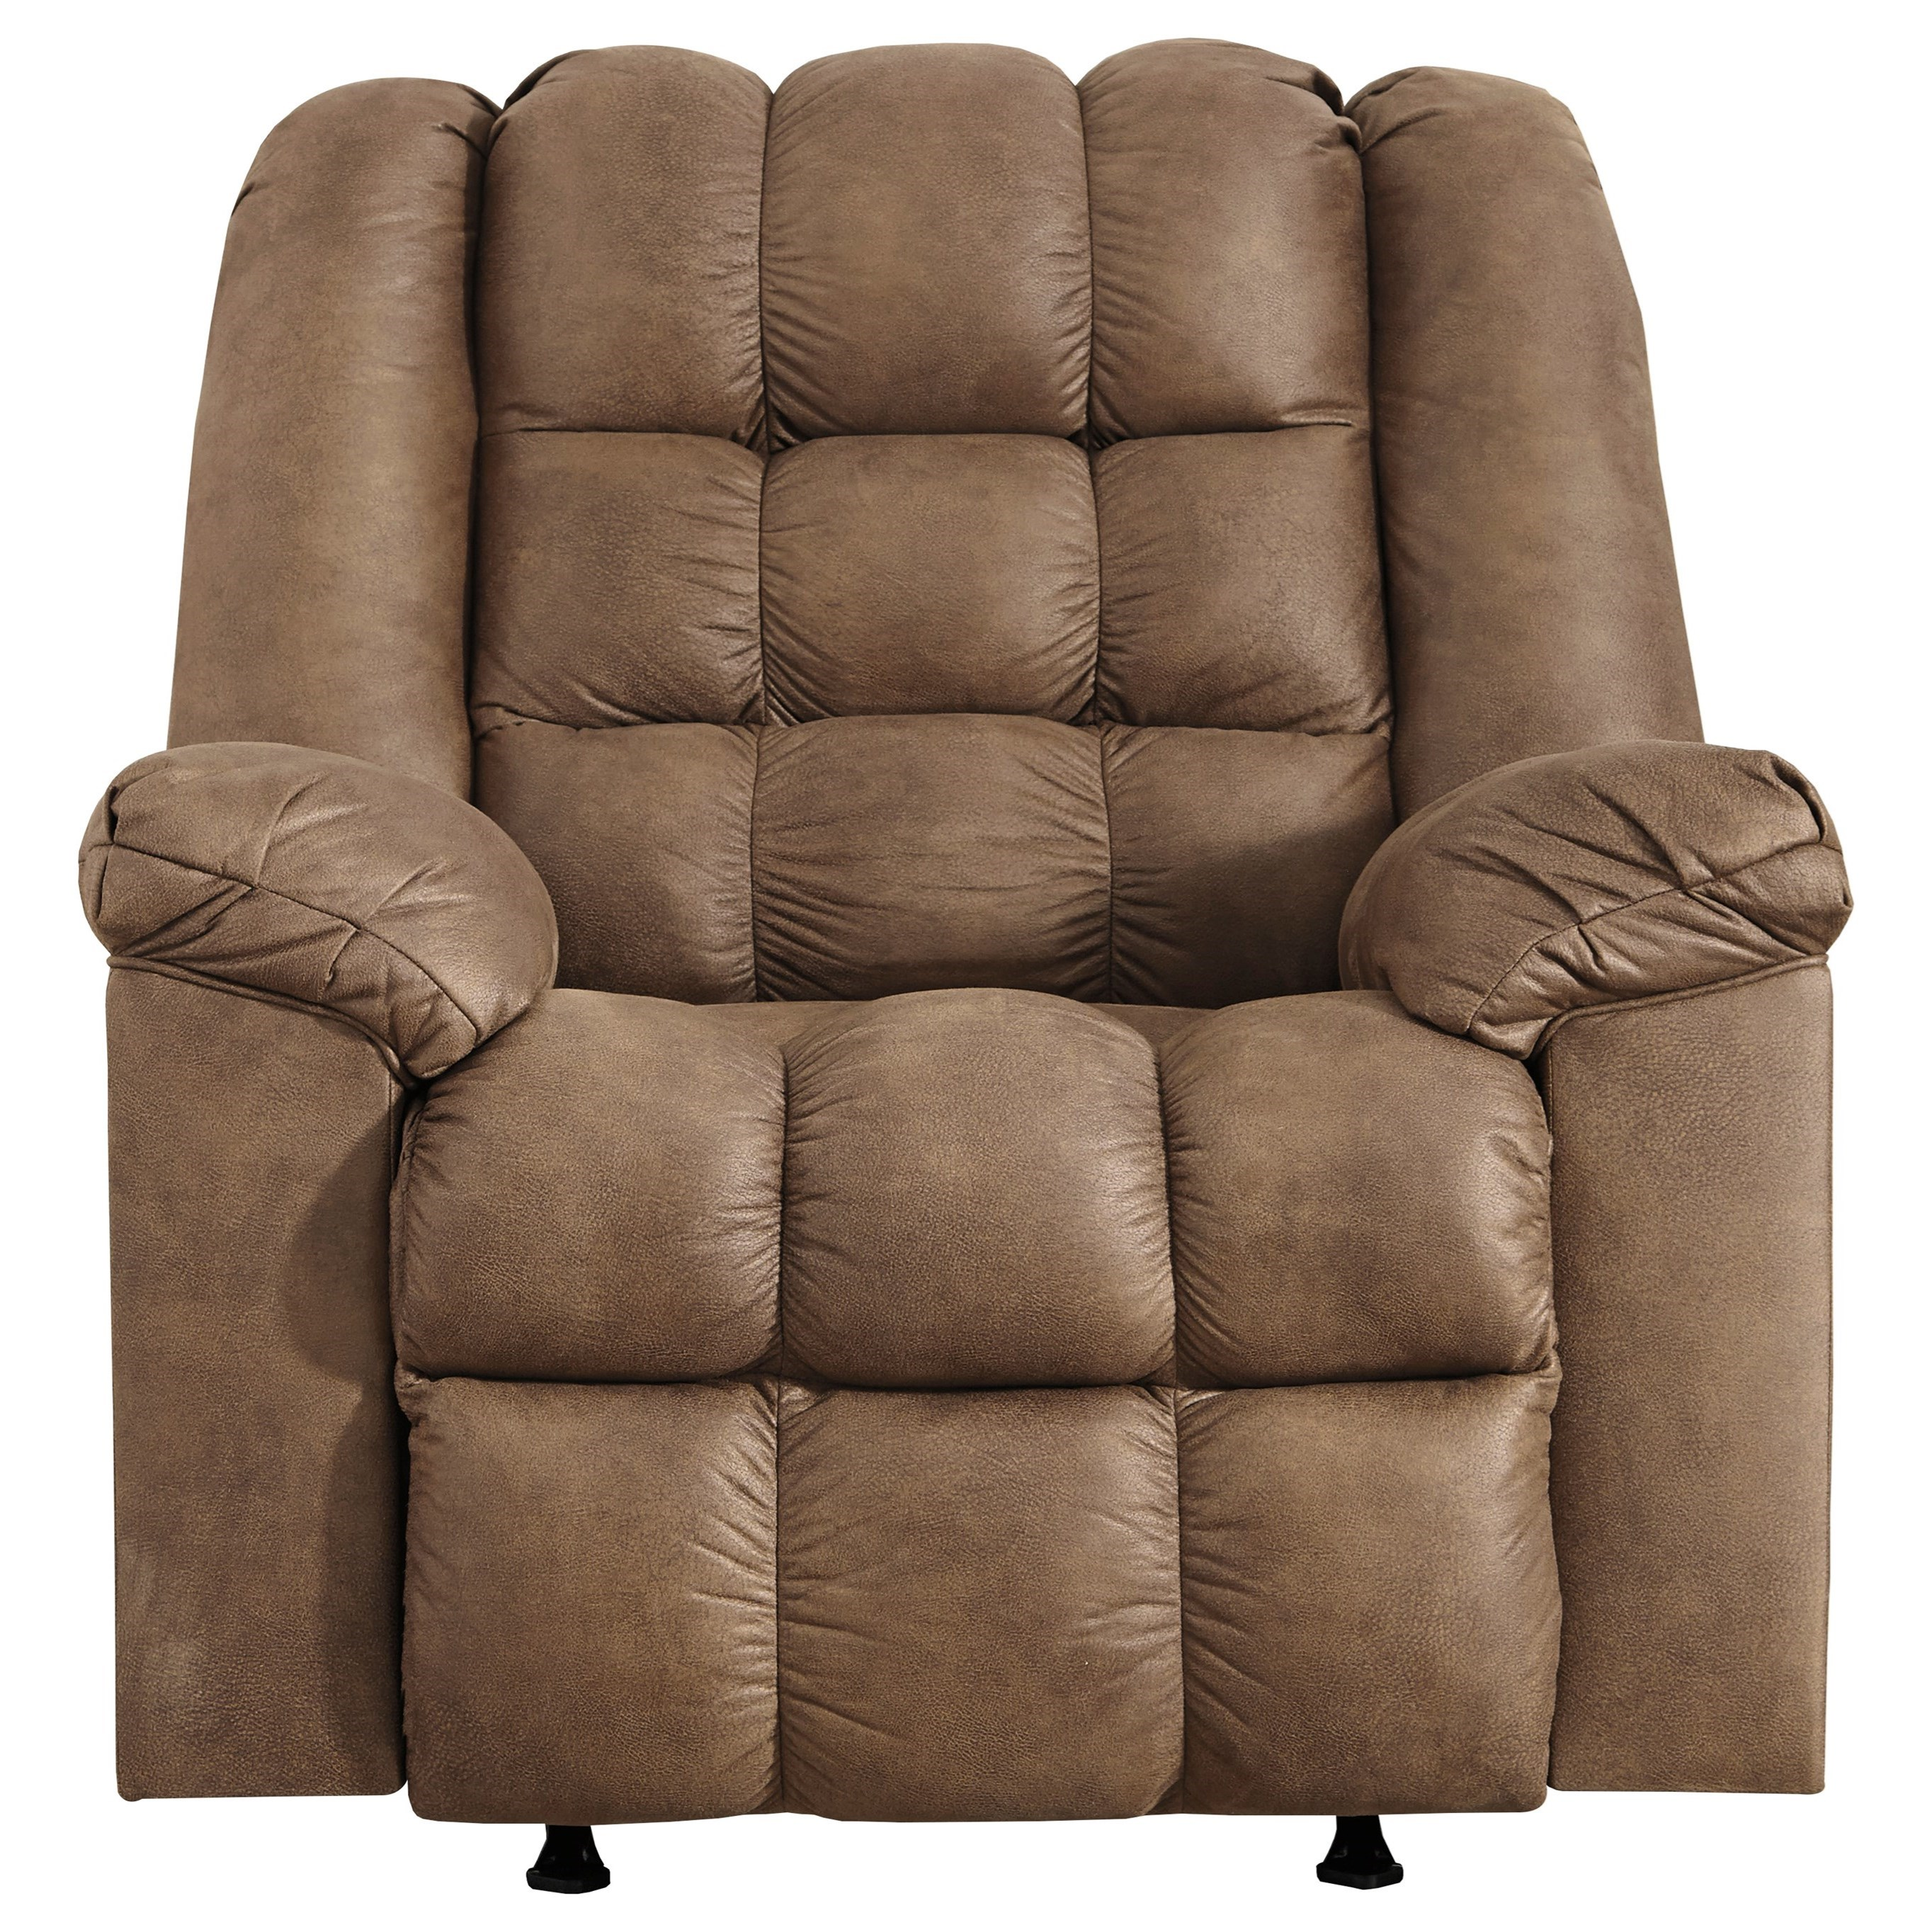 Adrano Rocker Recliner with Heat and Massage by Ashley (Signature Design) at Johnny Janosik